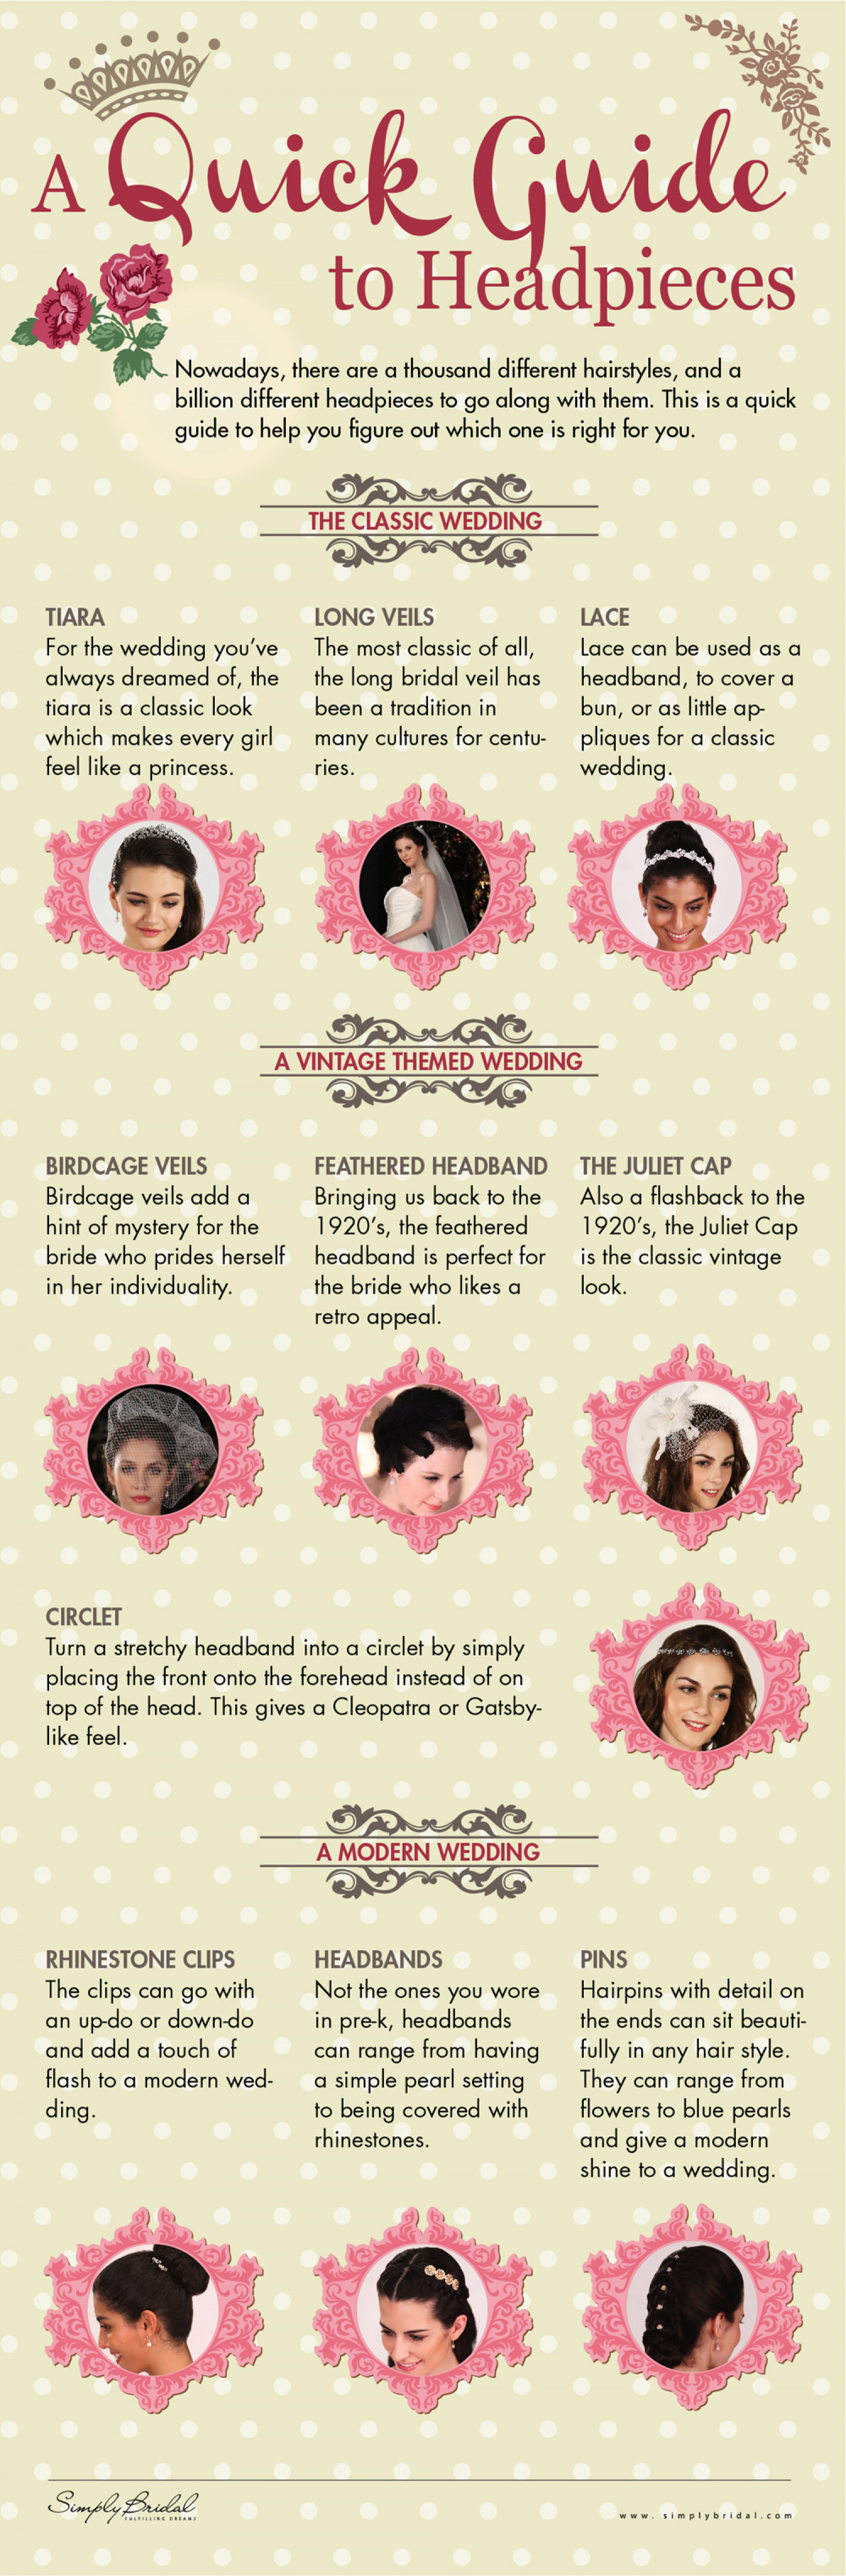 A Quick Guide to Headpieces Infographic